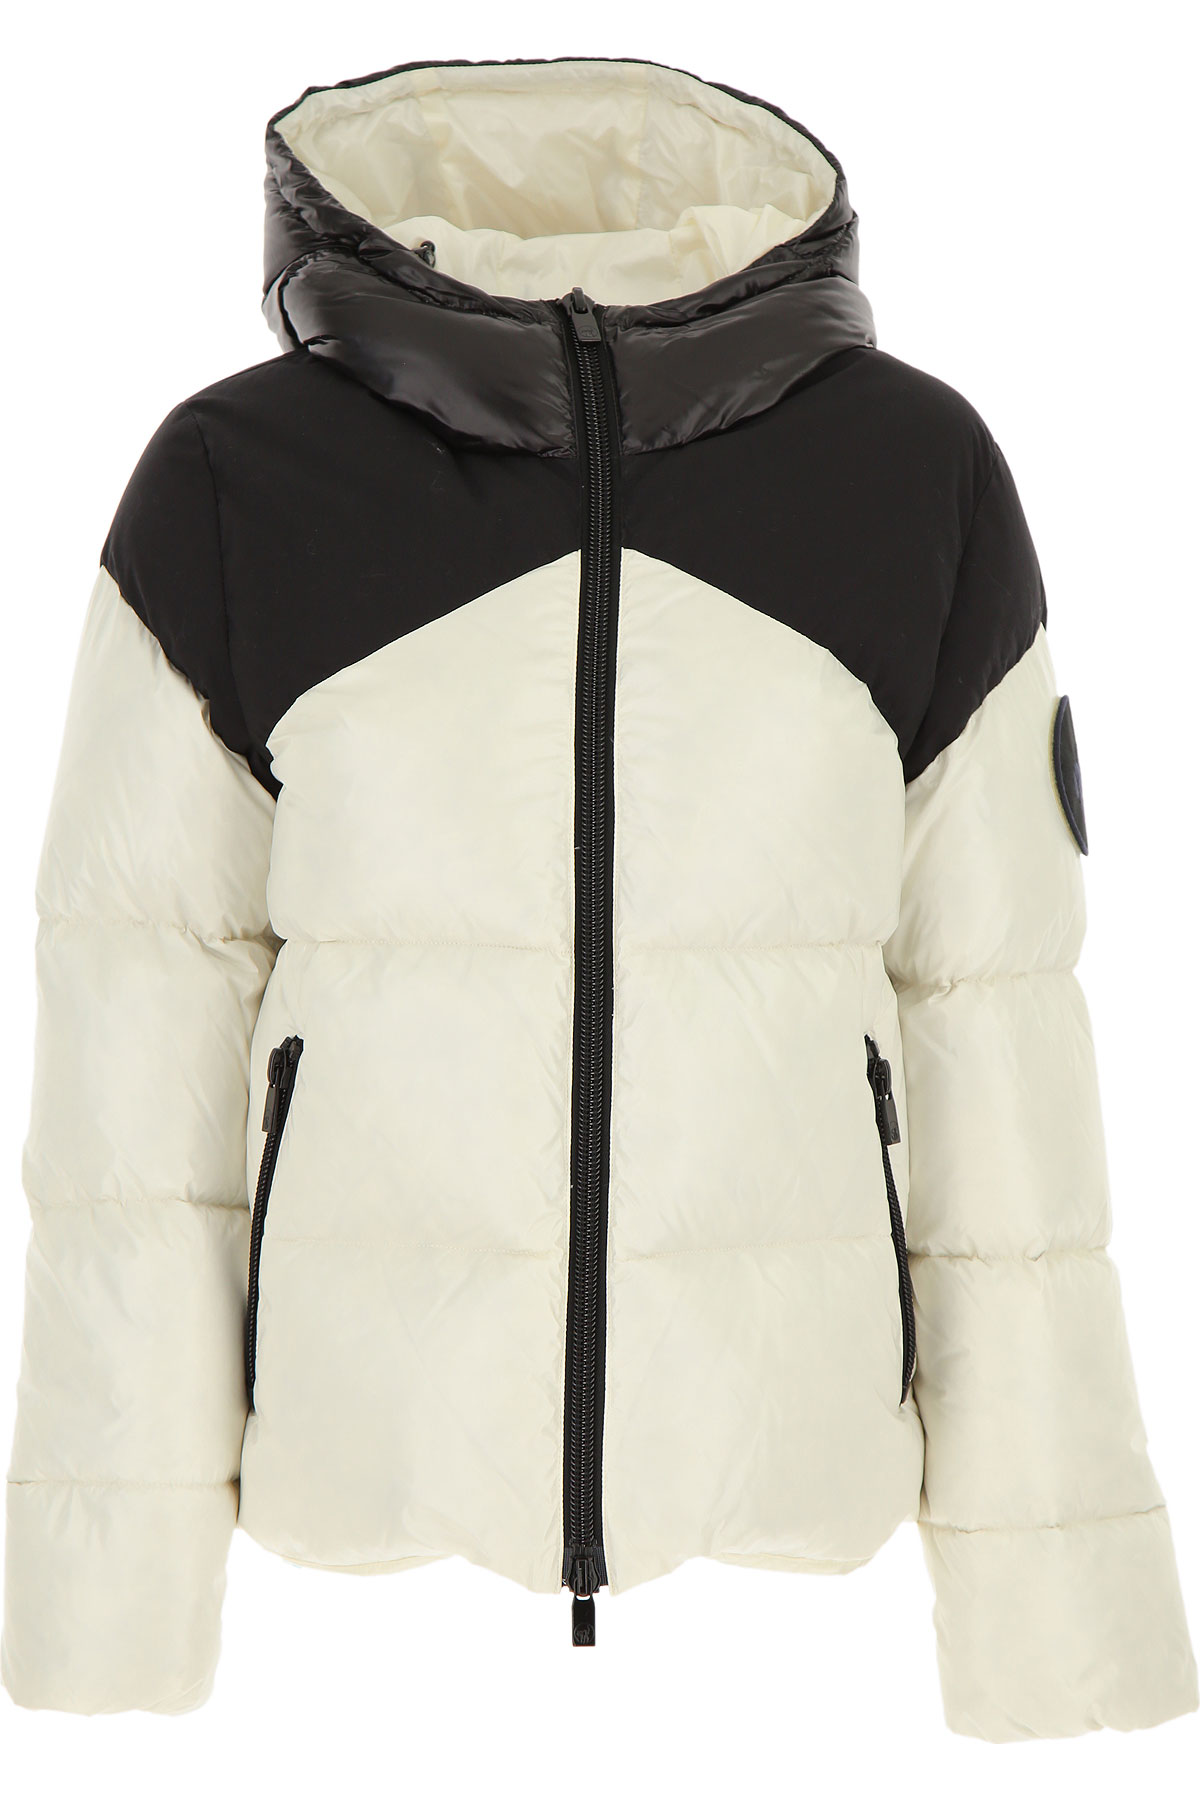 Ciesse Piumini Down Jacket for Women, Puffer Ski Jacket On Sale, White, polyester, 2019, 6 8